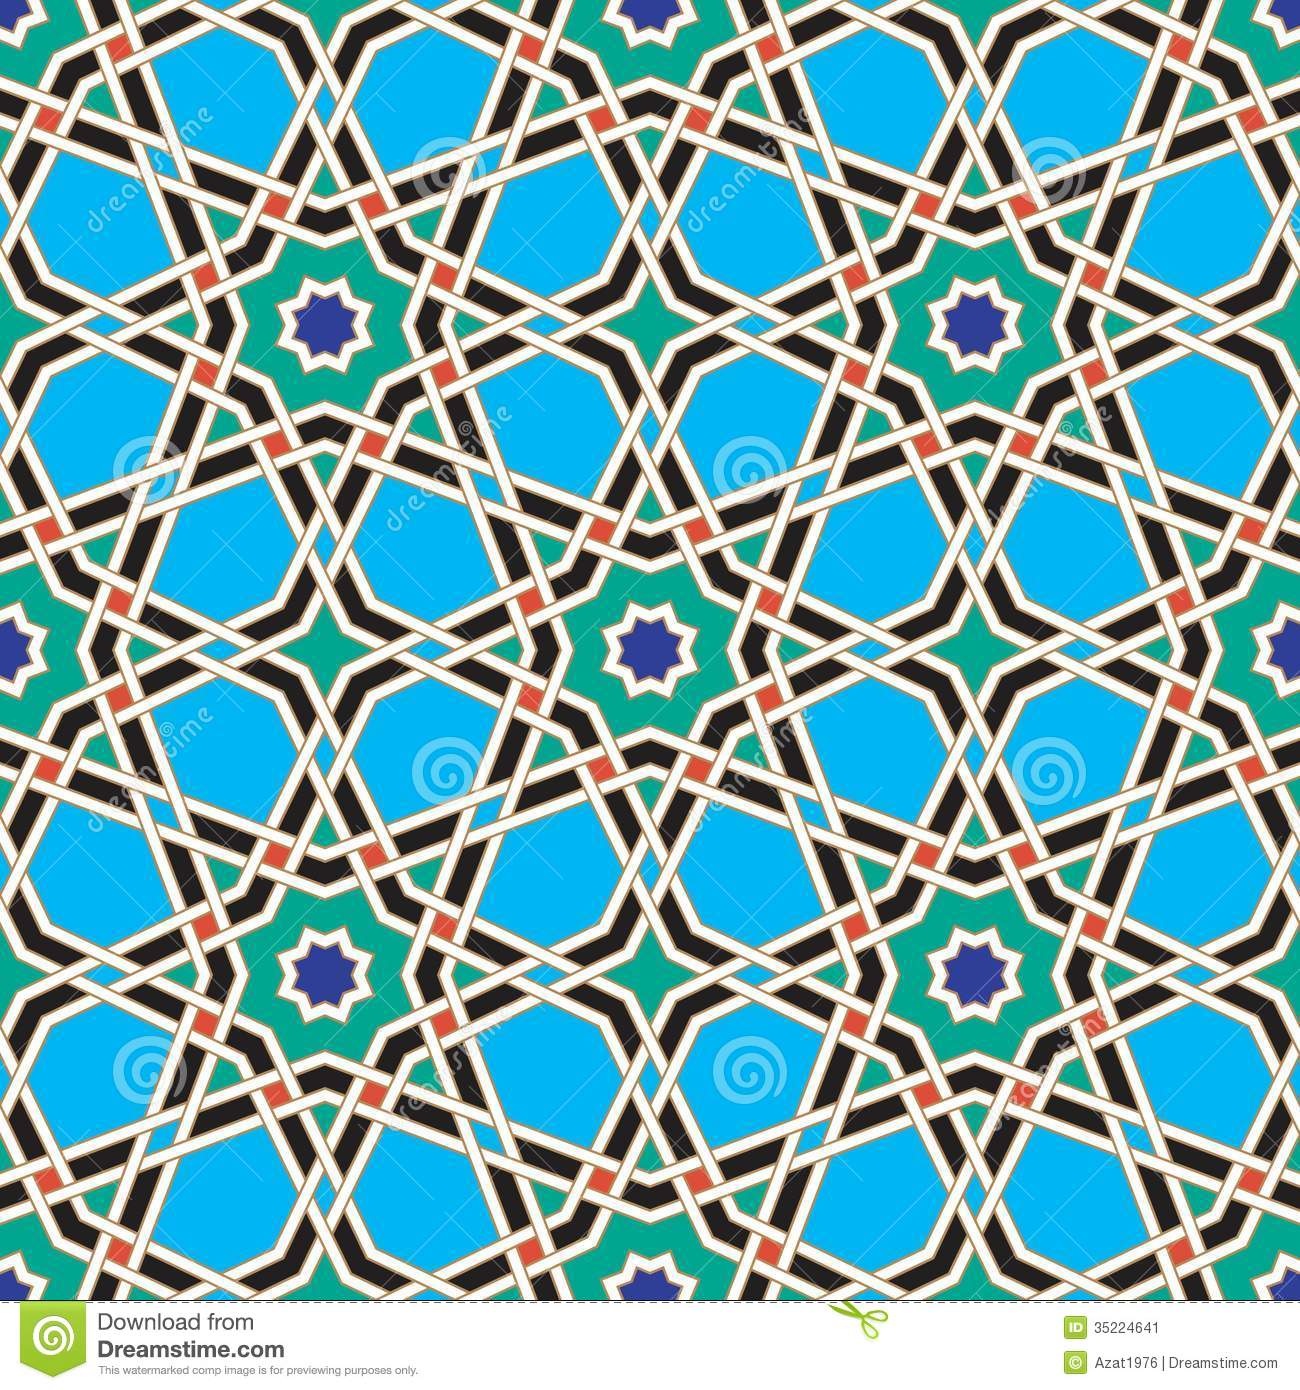 Image Result For X Tile Patterns